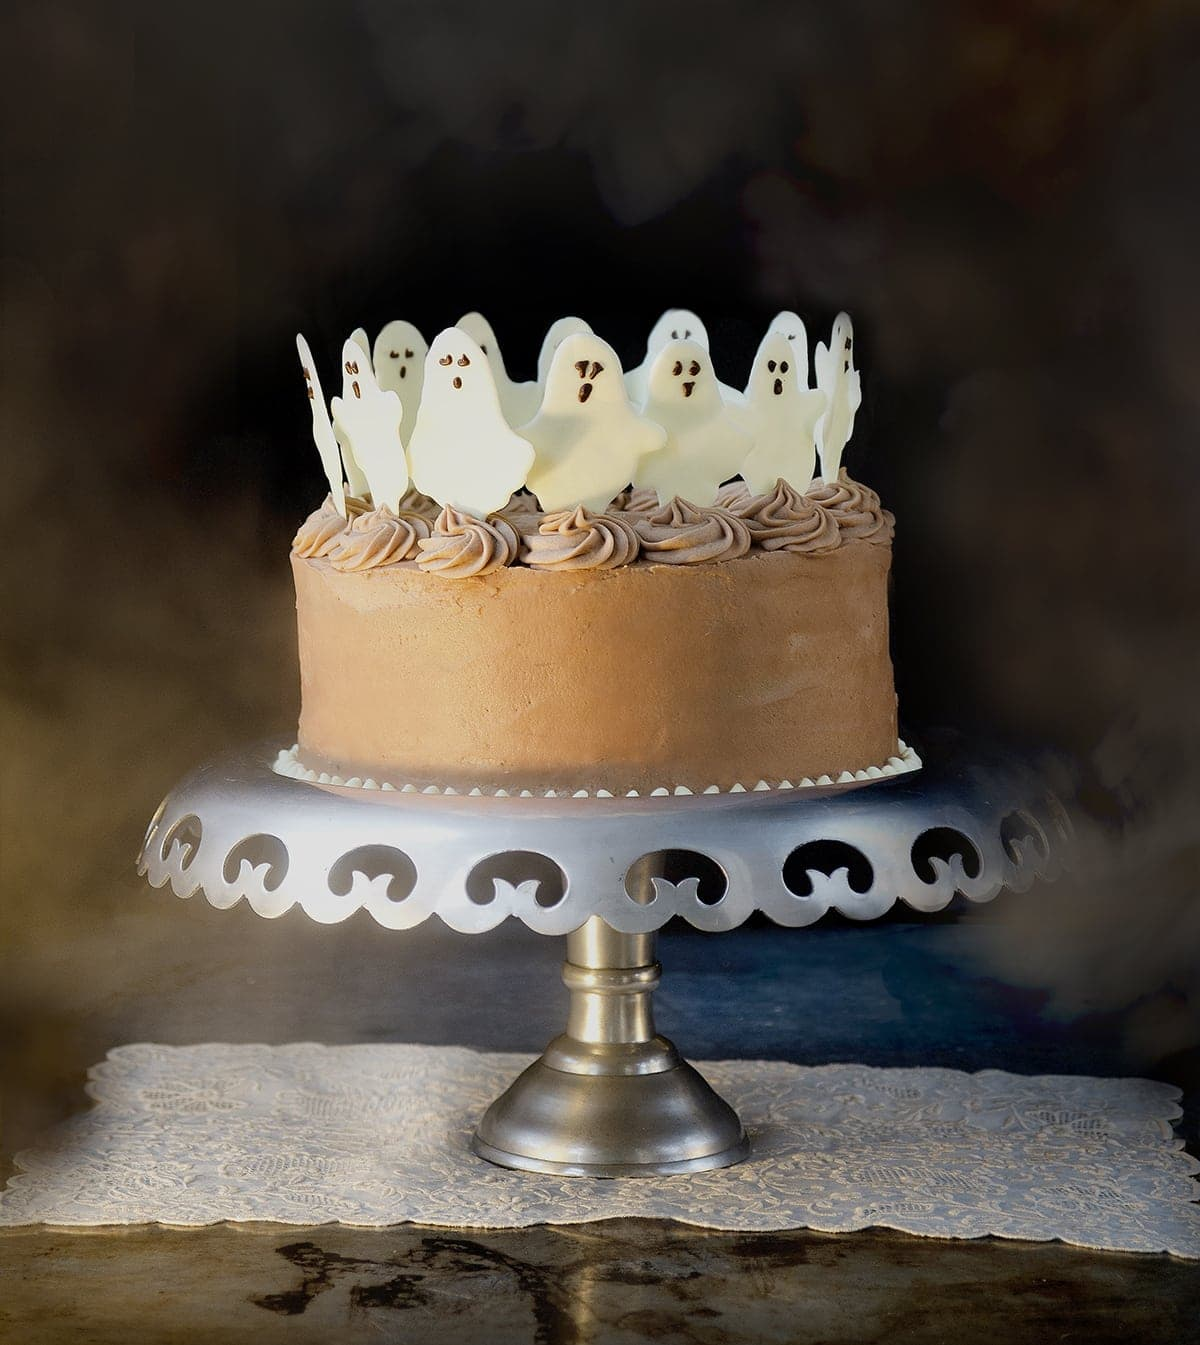 Dancing Ghosts Chocolate Coconut Cake - Vintage Kitty